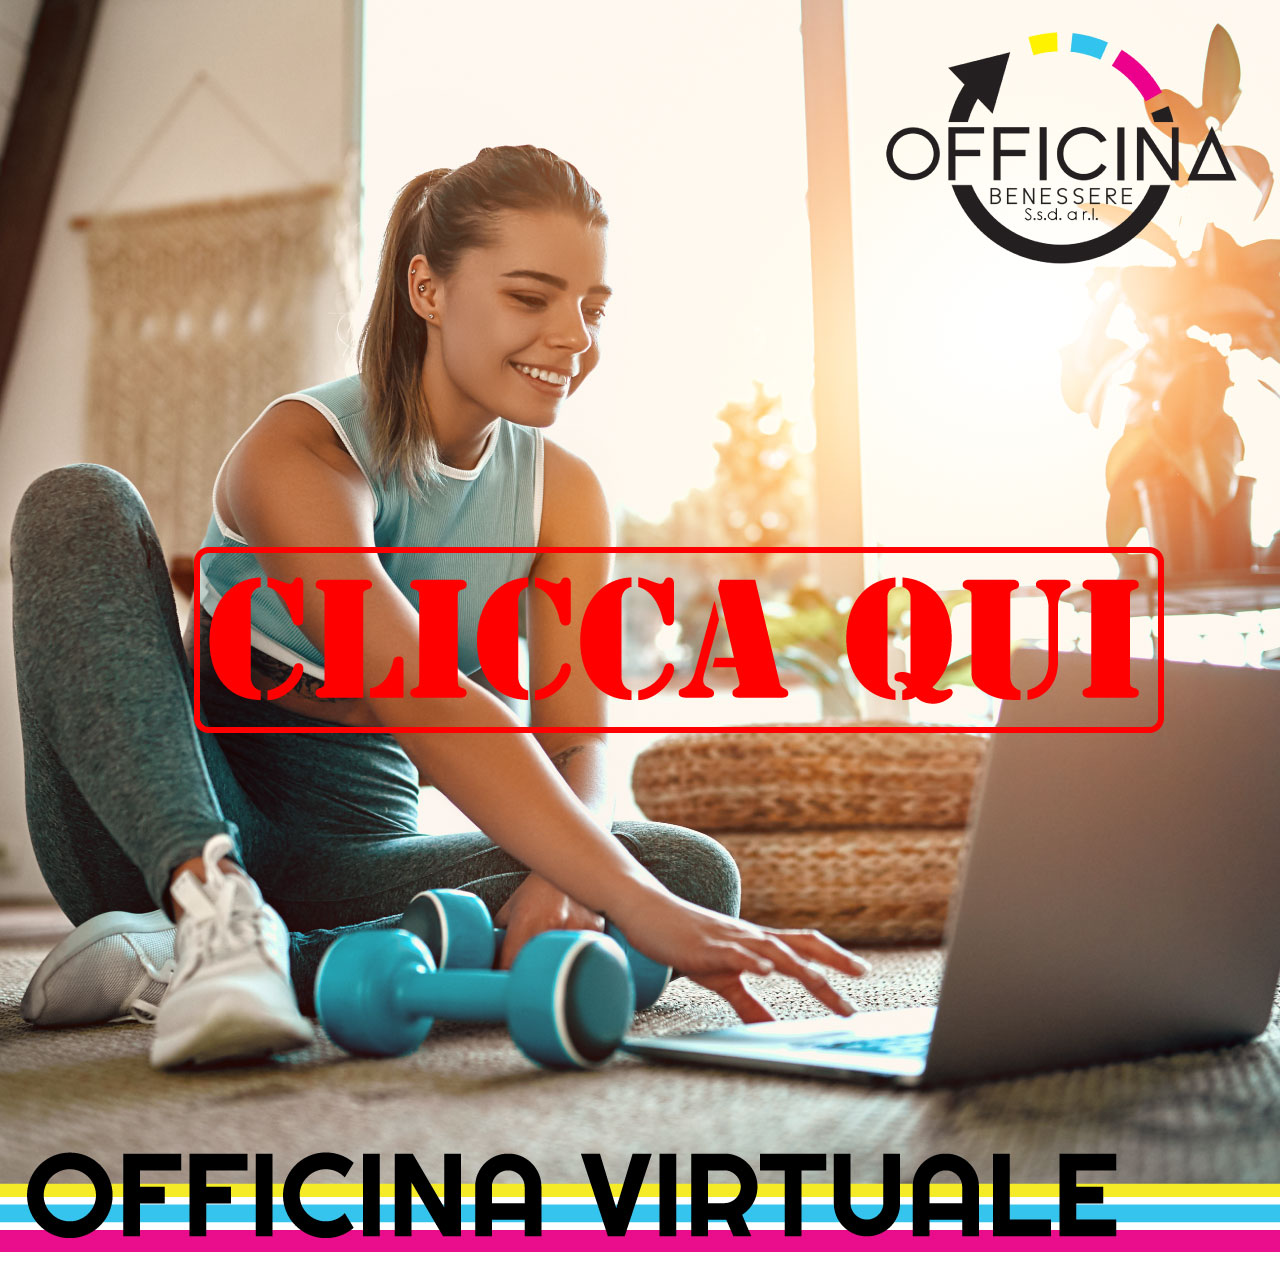 Officina Virtuale